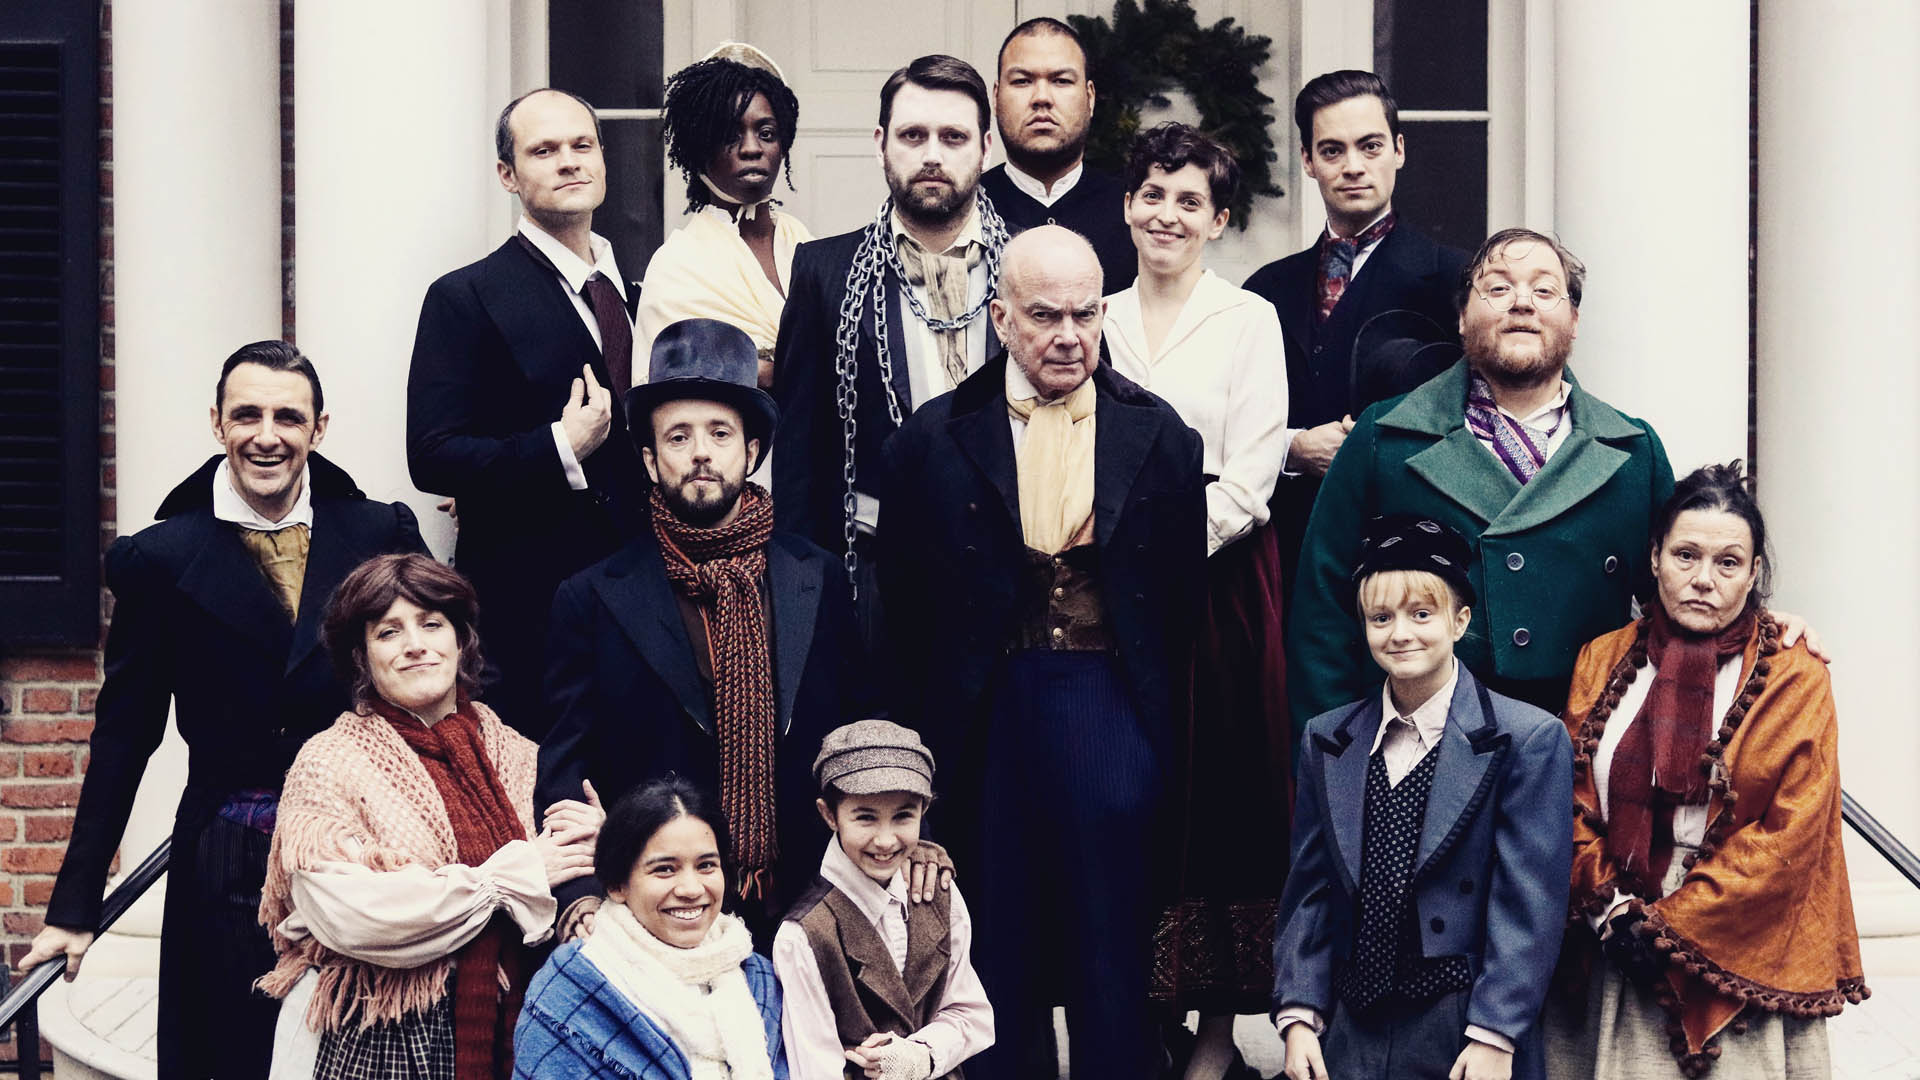 'A Christmas Carol' 2018 Cast - Photo Courtesy of Graham Isador